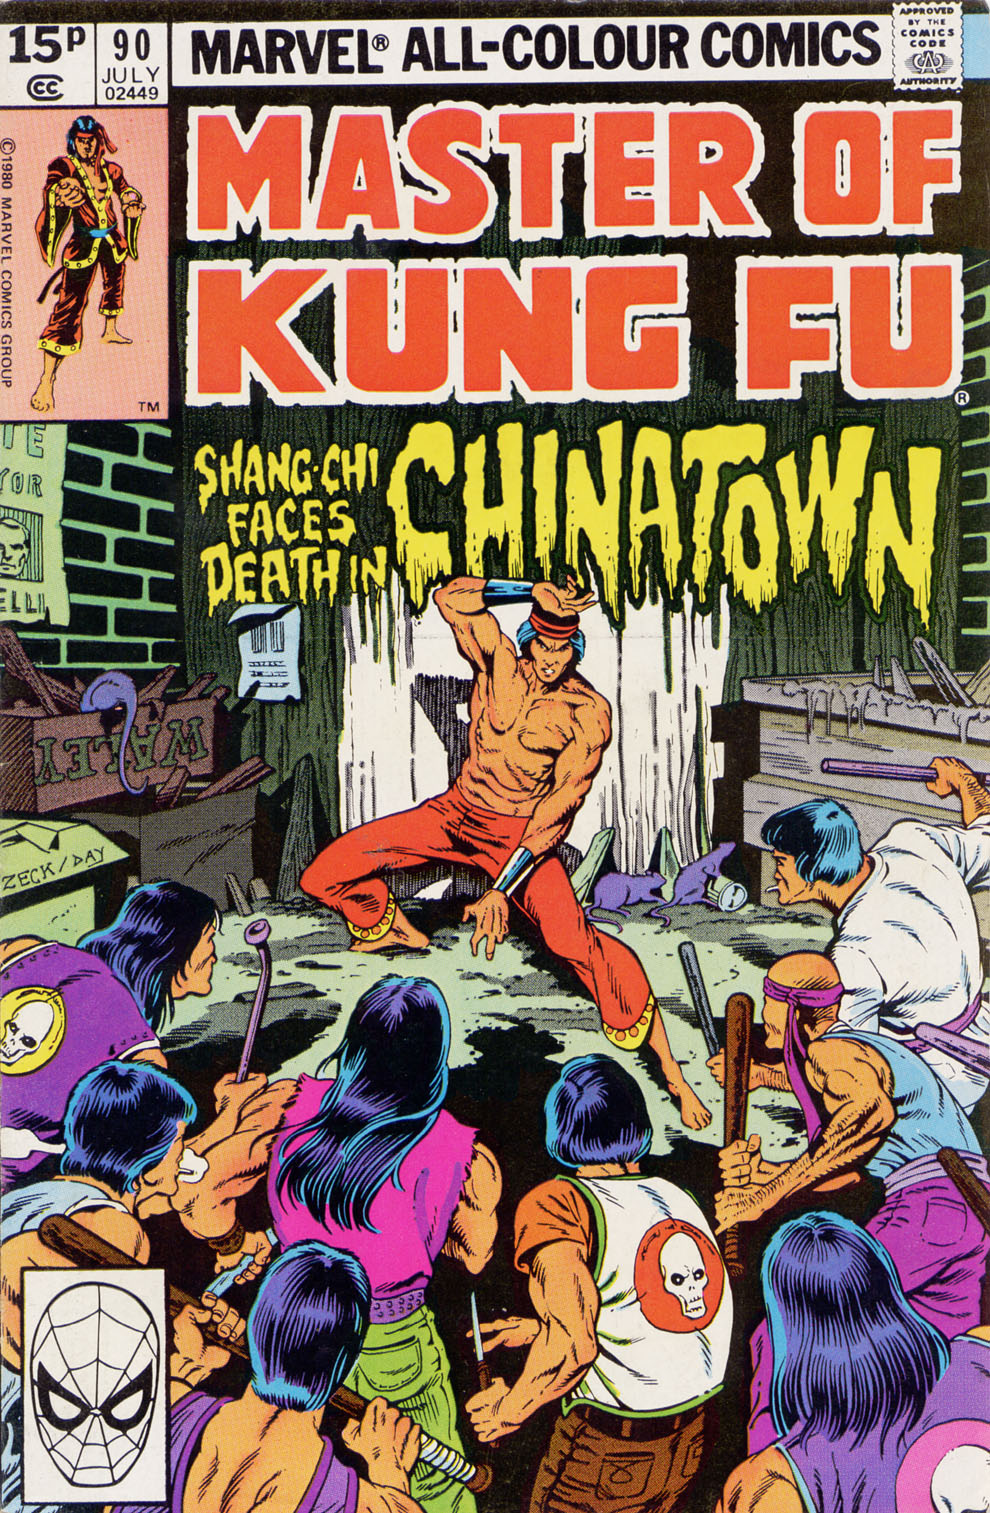 Master of Kung Fu (1974) issue 90 - Page 1